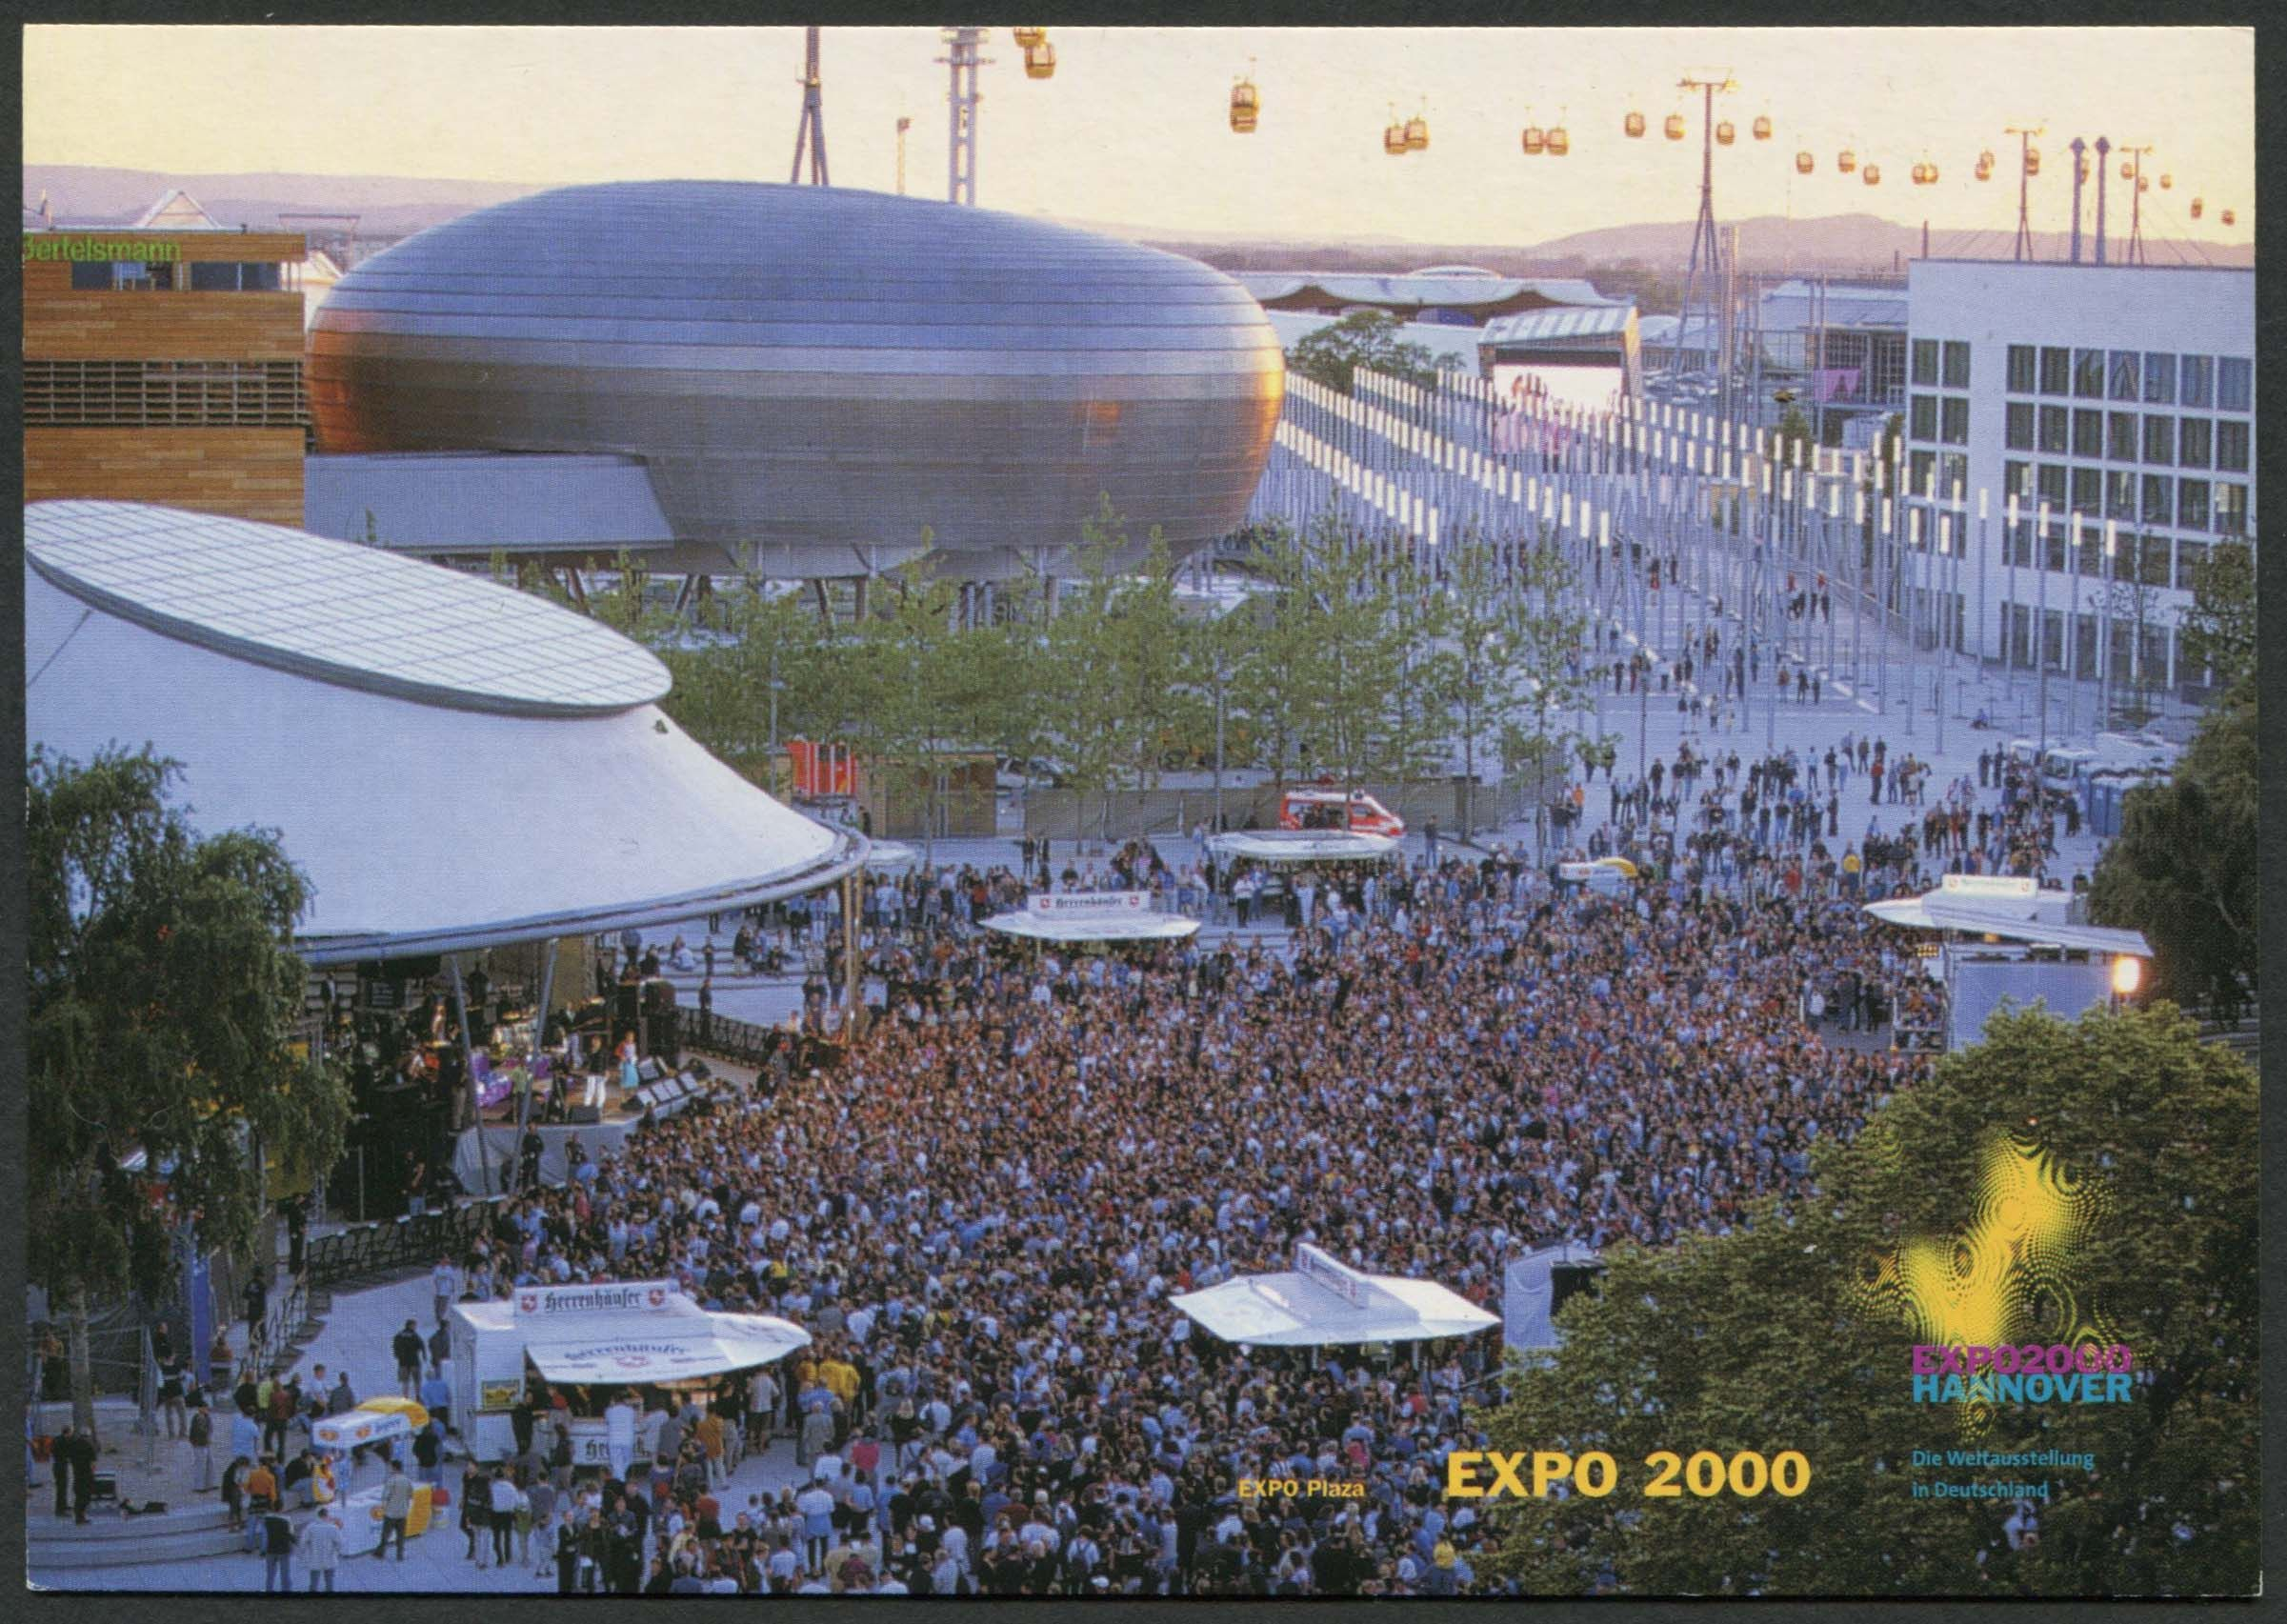 Expo Plaza Hannover Expo 2000 Was A World S Fair Held In Hanover Germany From 01 Jun